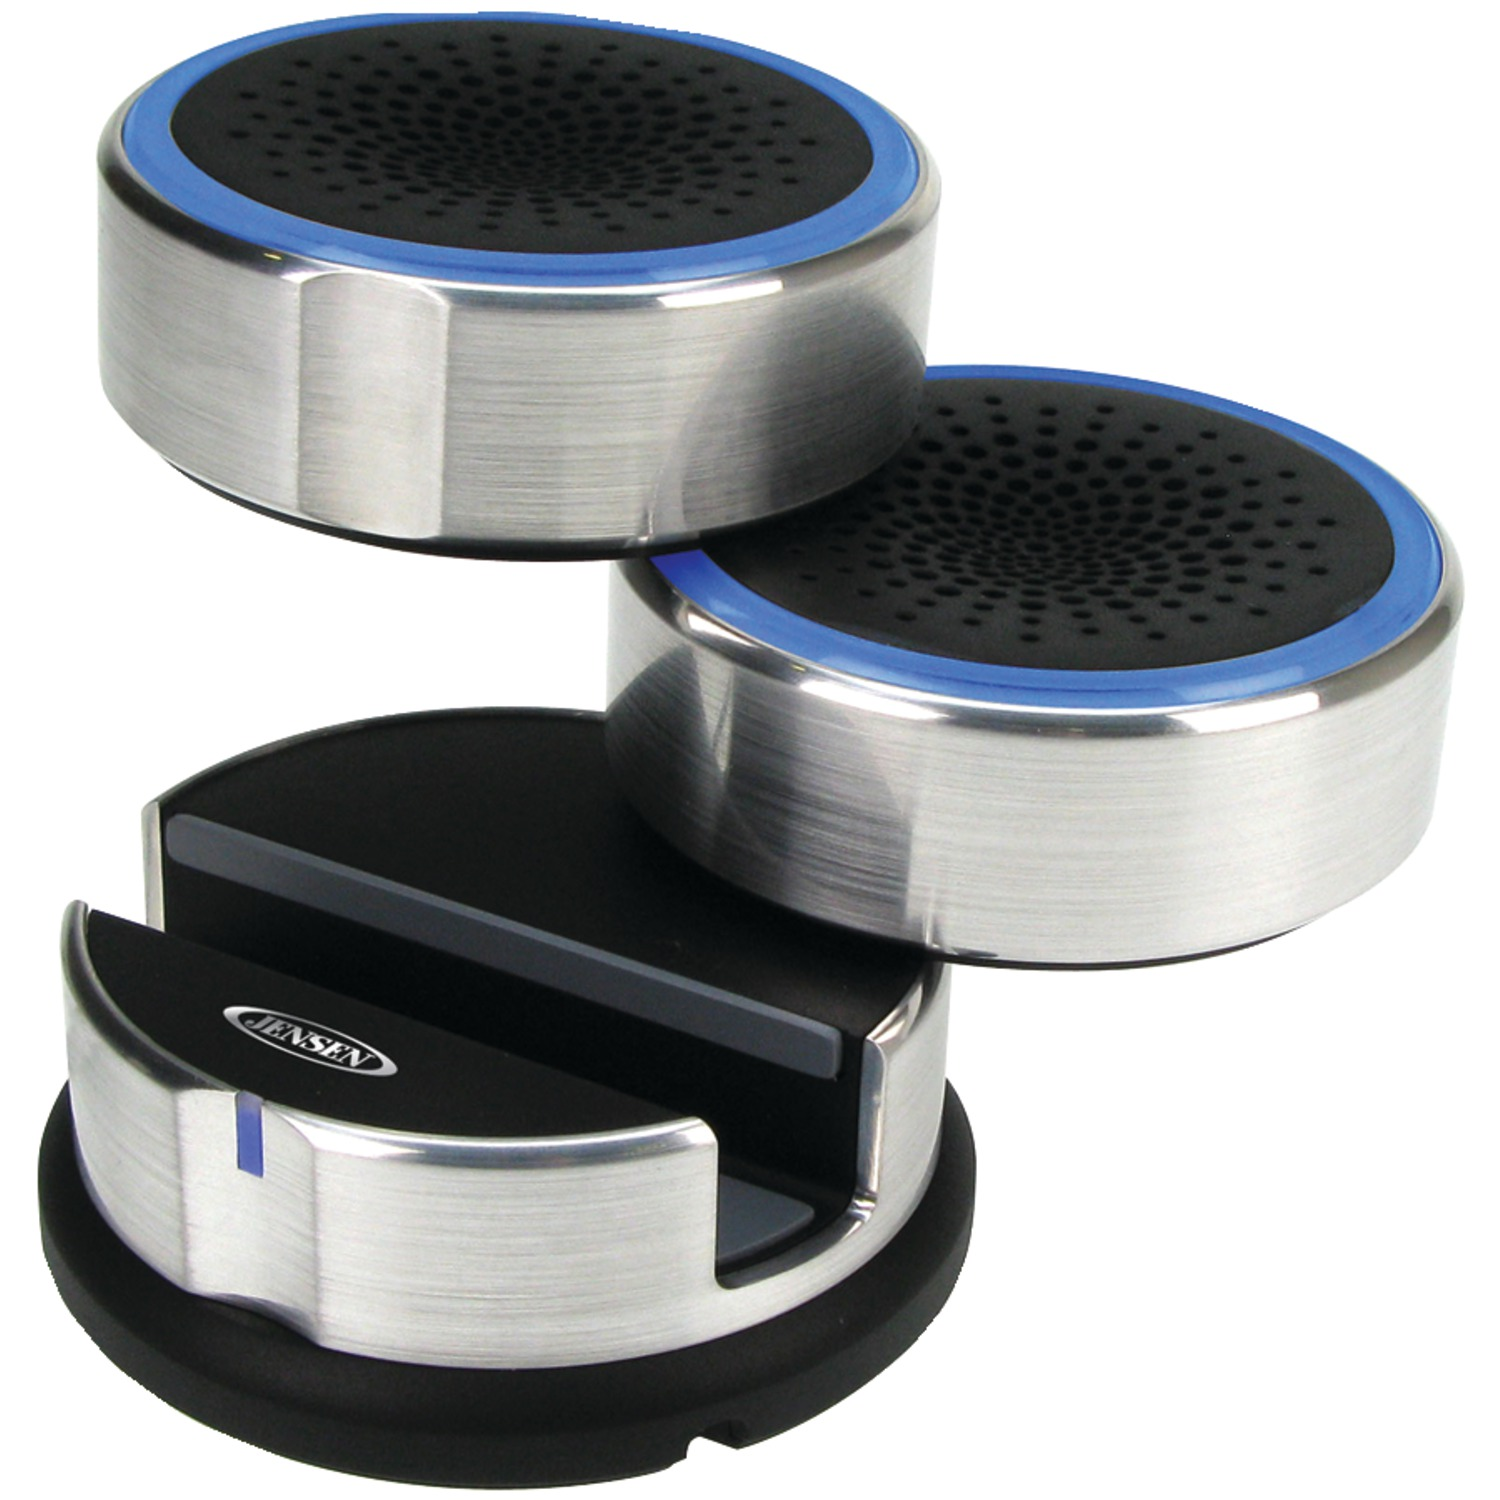 Jensen Smps 222 Portable Speaker System With Swivel Speakers